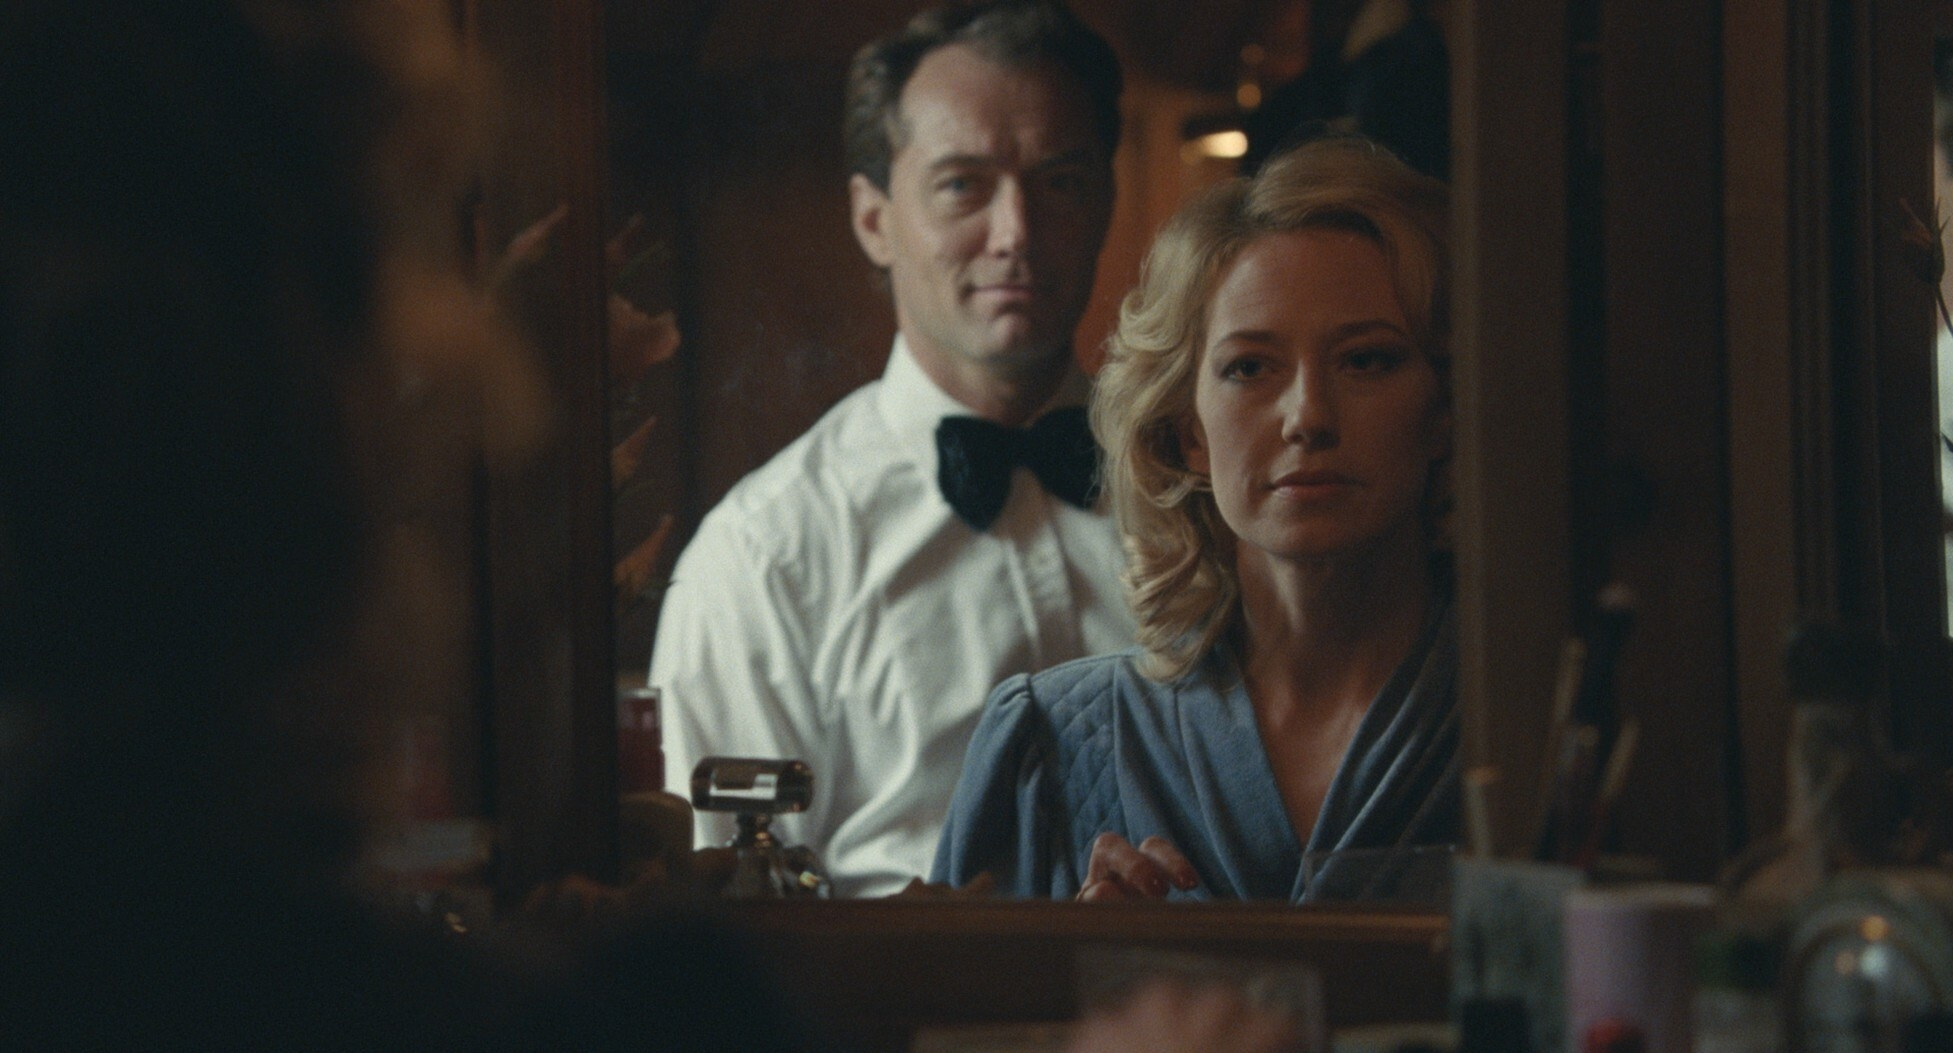 Jude Law and Carrie Coon look into a mirror